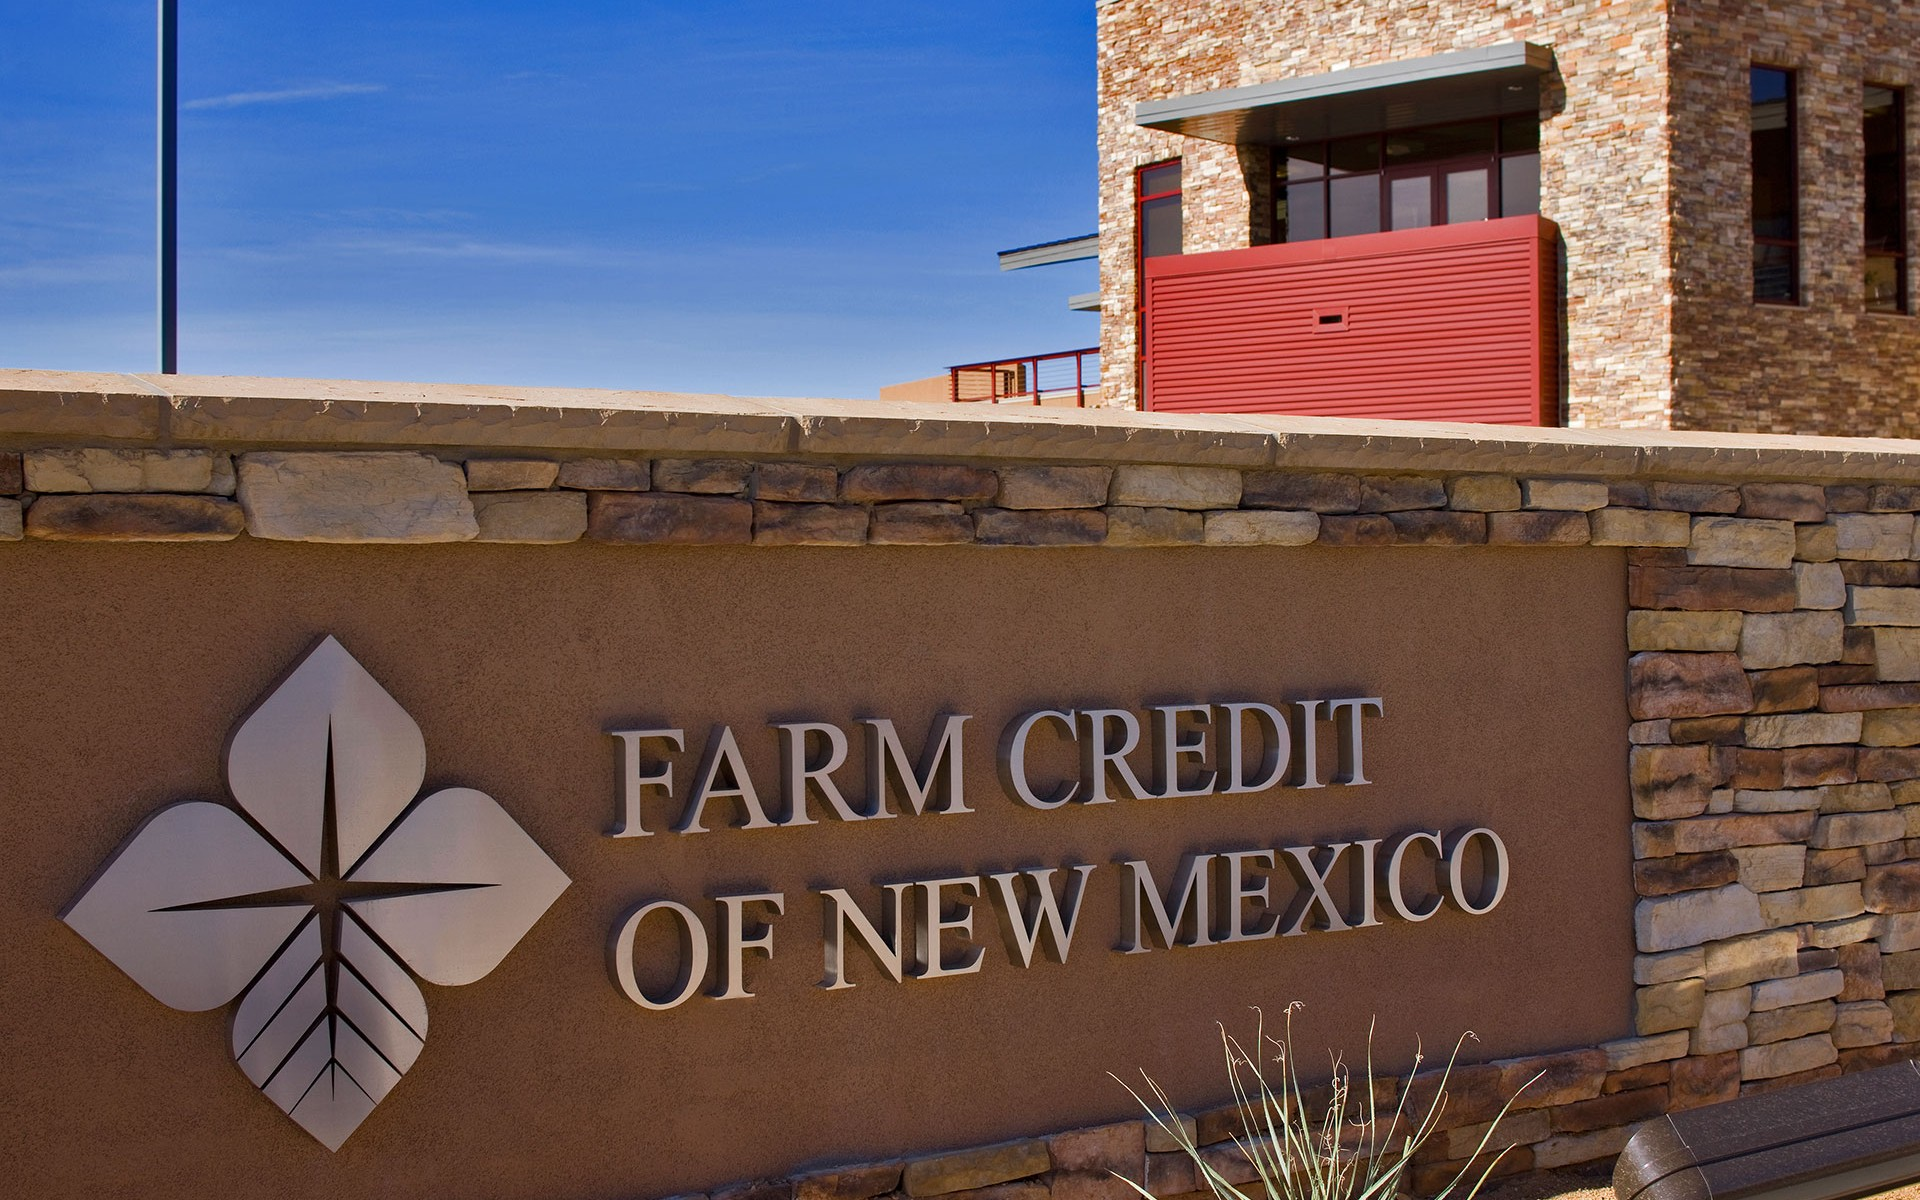 Farm Credit of New Mexico - Monument